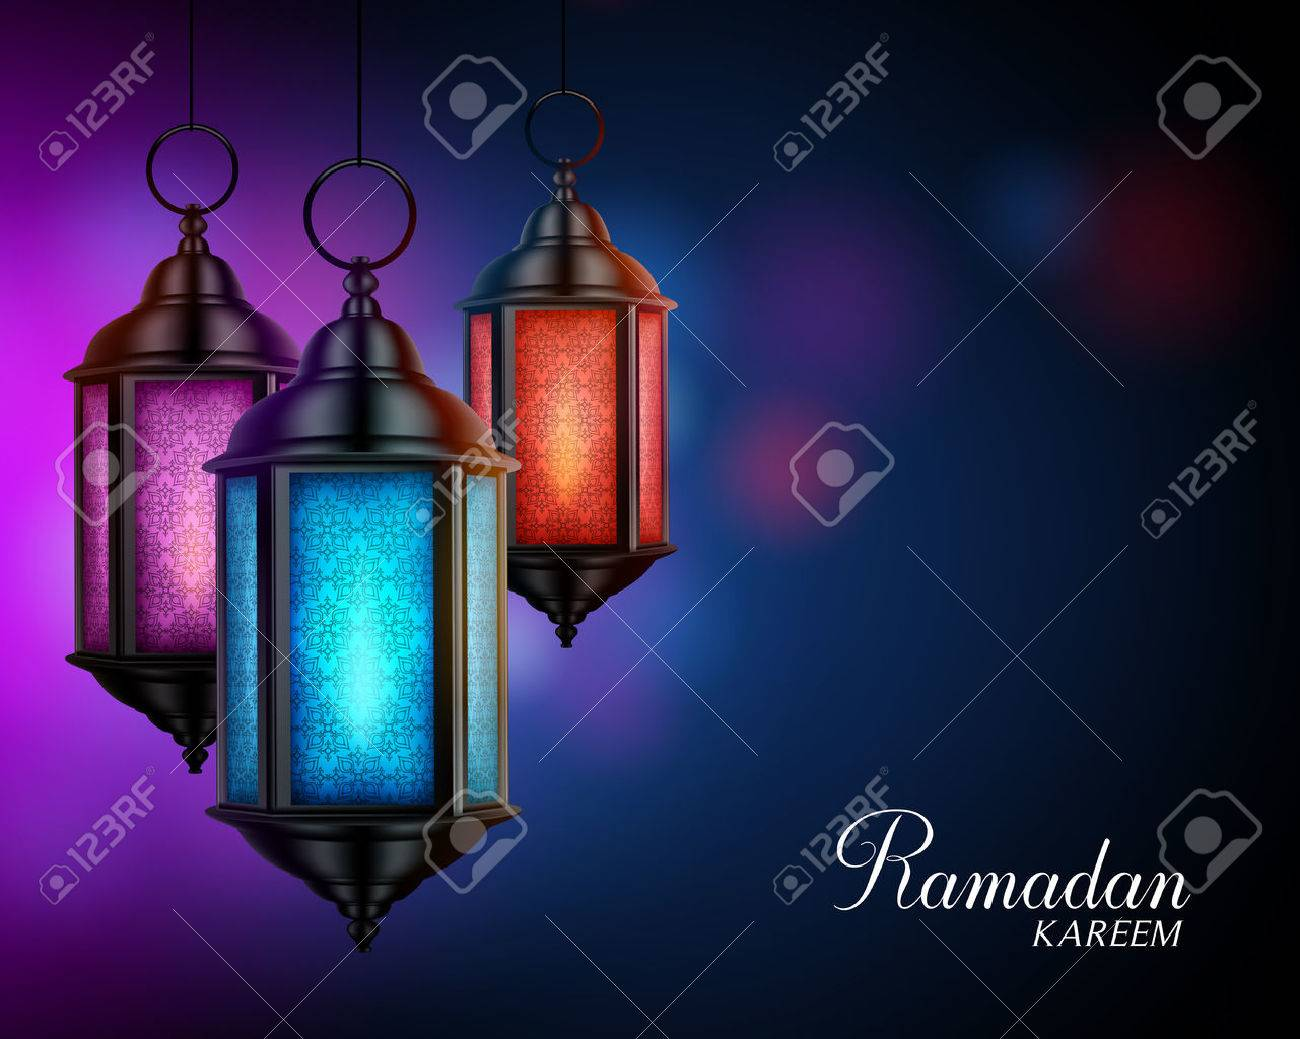 Ramadan Kareem Greetings with Colorful Set of Lanterns or Fanous in a Dark Glowing Background. 3D Realistic Vector Illustration - 56152489